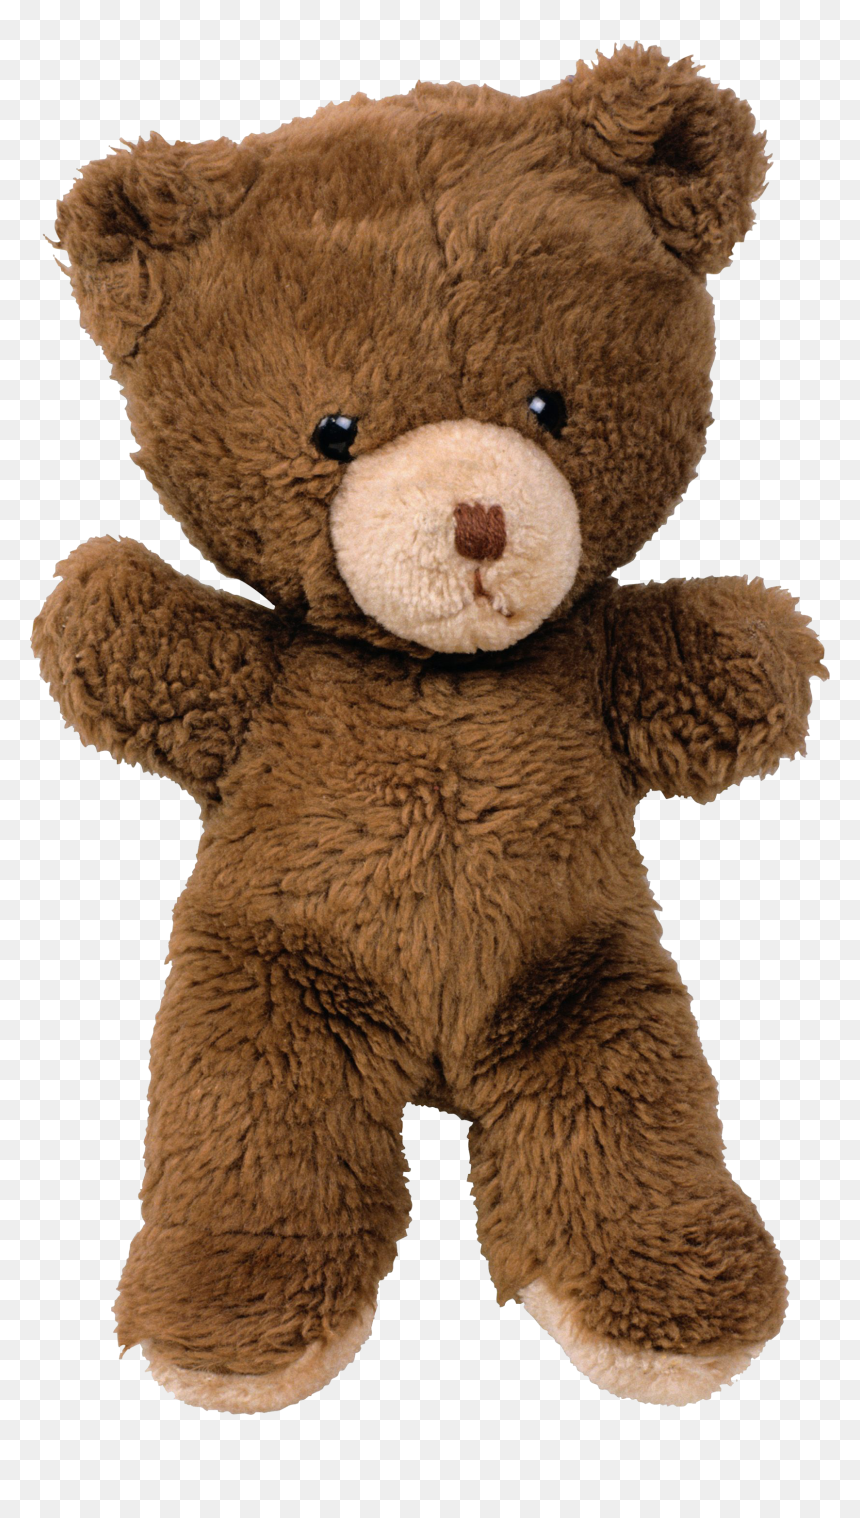 Old Teddy Bear Png Transparent Png 600x1031 Png Dlf Pt